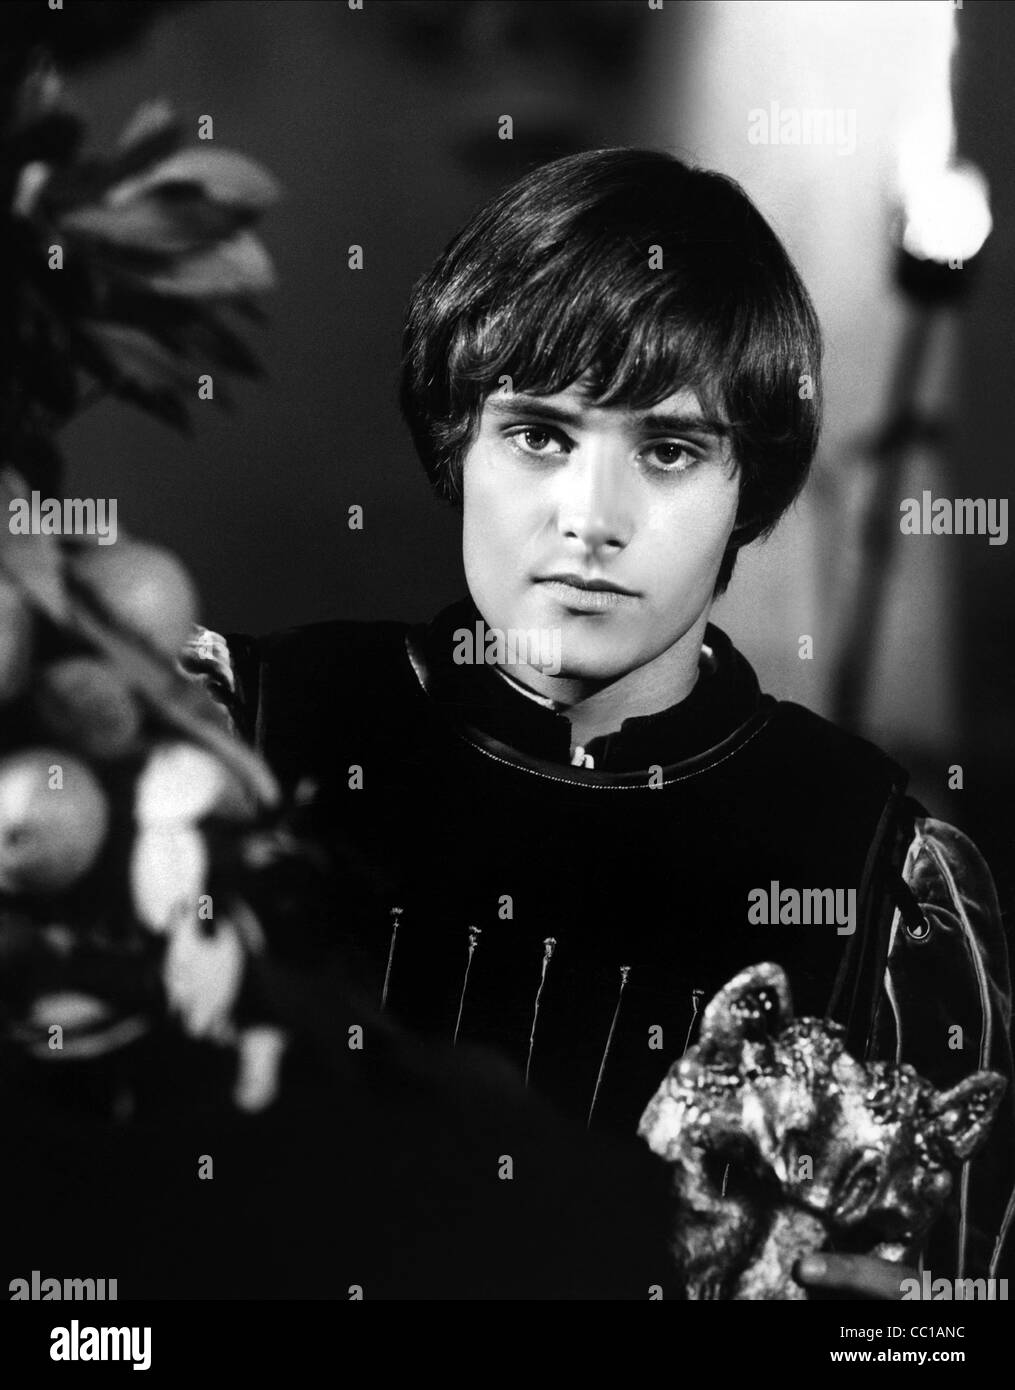 leonard whiting and olivia hussey relationshipleonard whiting and olivia hussey, leonard whiting 2016, leonard whiting olivia hussey married, leonard whiting height, leonard whiting foto, leonard whiting biography, leonard whiting frankenstein, leonard whiting, leonard whiting 2015, leonard whiting now, leonard whiting 2014, leonard whiting zac efron, leonard whiting and olivia hussey relationship, leonard whiting romeo and juliet, leonard whiting and zac efron related, leonard whiting 2012, leonard whiting actor, leonard whiting wife, leonard whiting and olivia hussey interview, leonard whiting and olivia hussey 2015